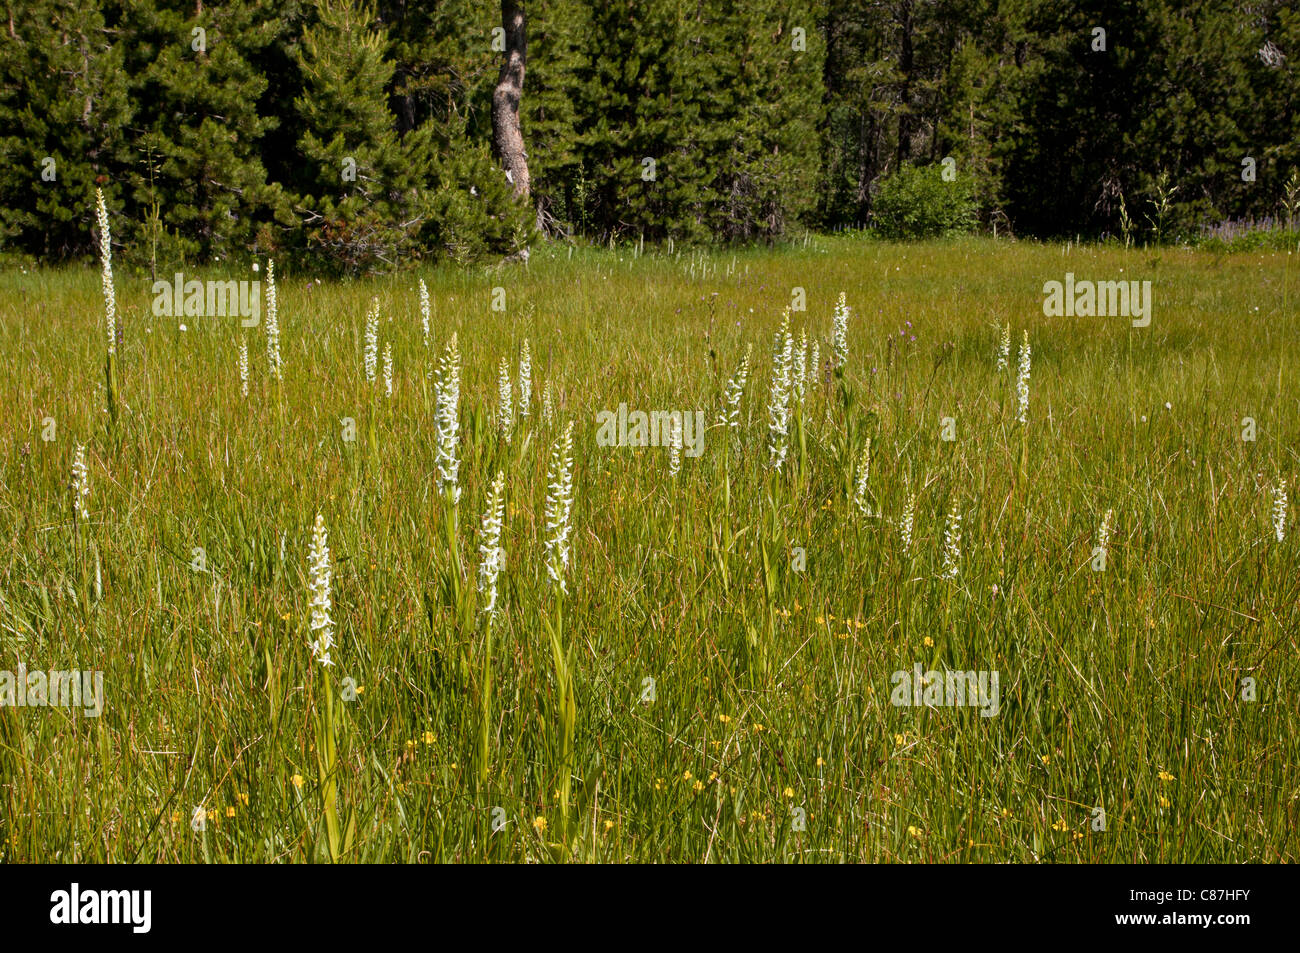 Sierra bog orchid or White Rein Orchid, Platanthera leucostachys in wet meadow, Yuba Pass, Sierra Nevada, California. - Stock Image